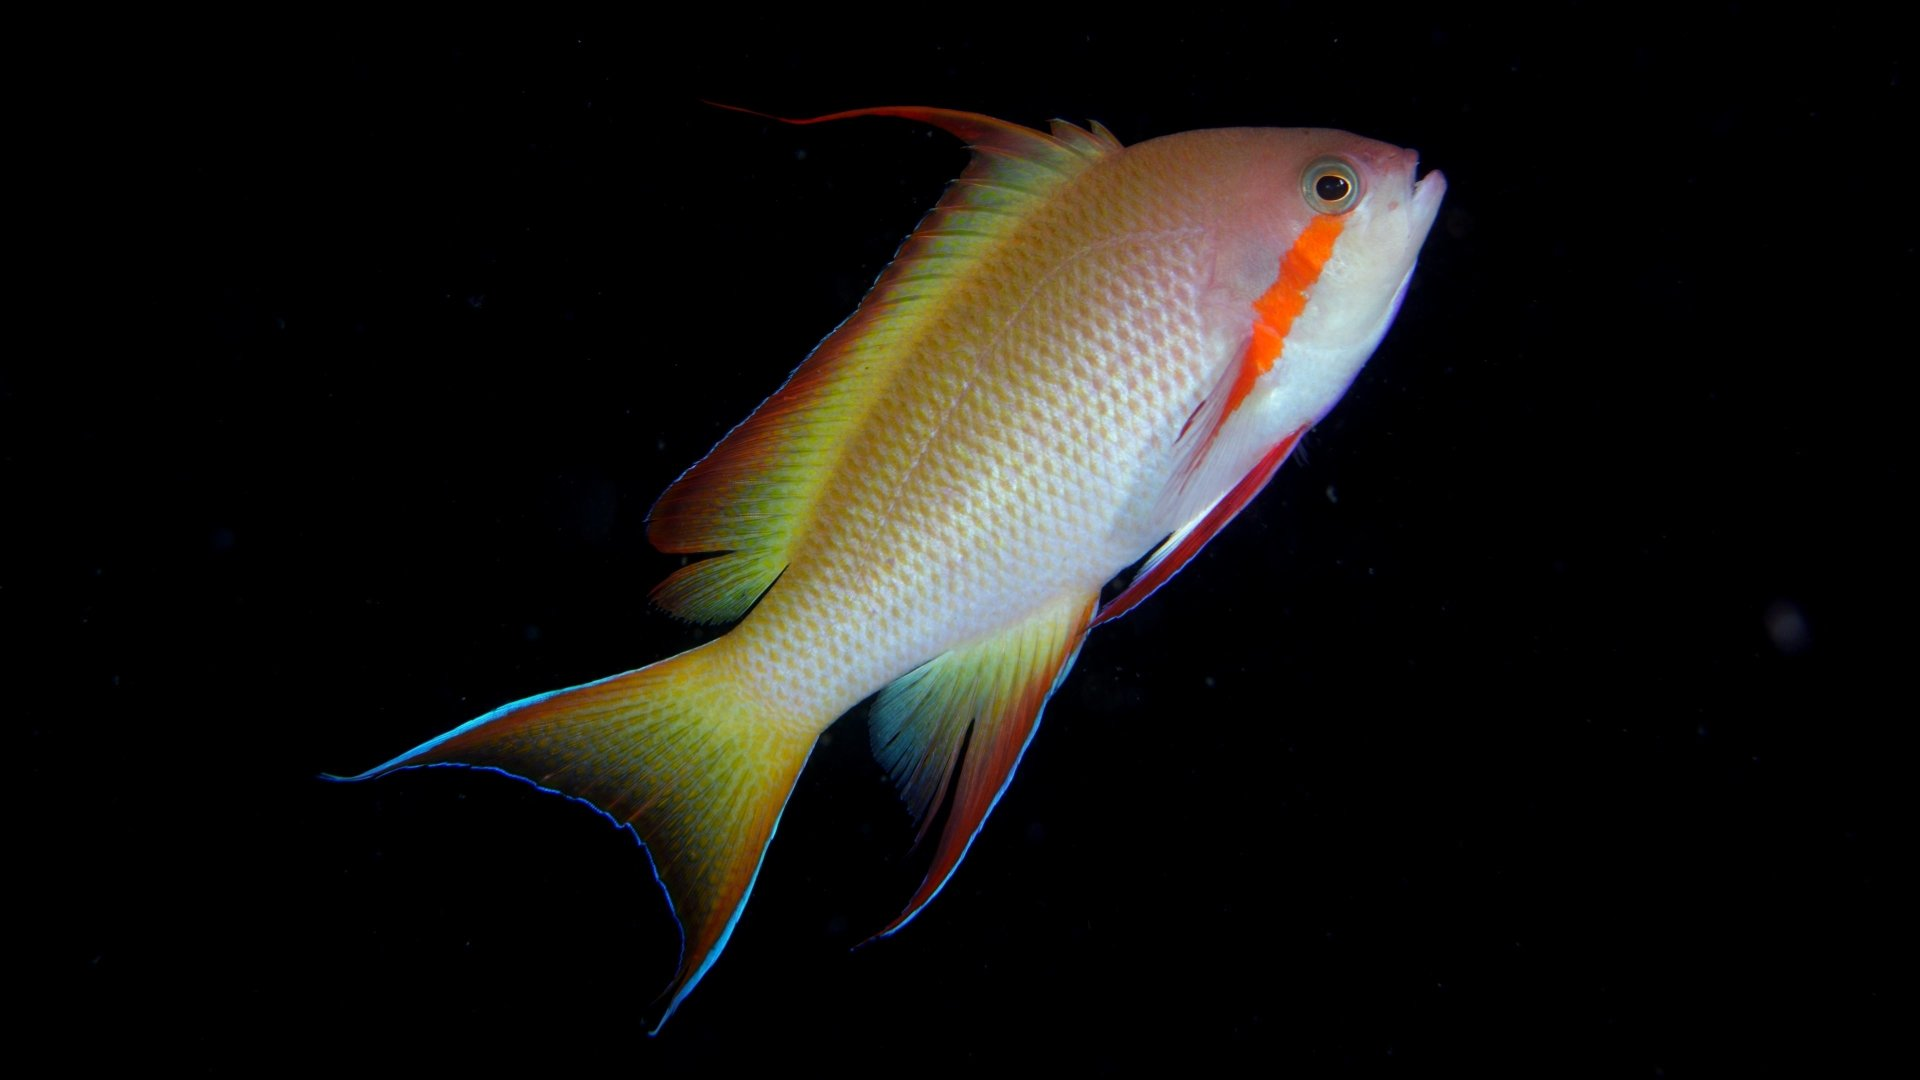 fish 4k Ultra HD Wallpaper and Background Image ...